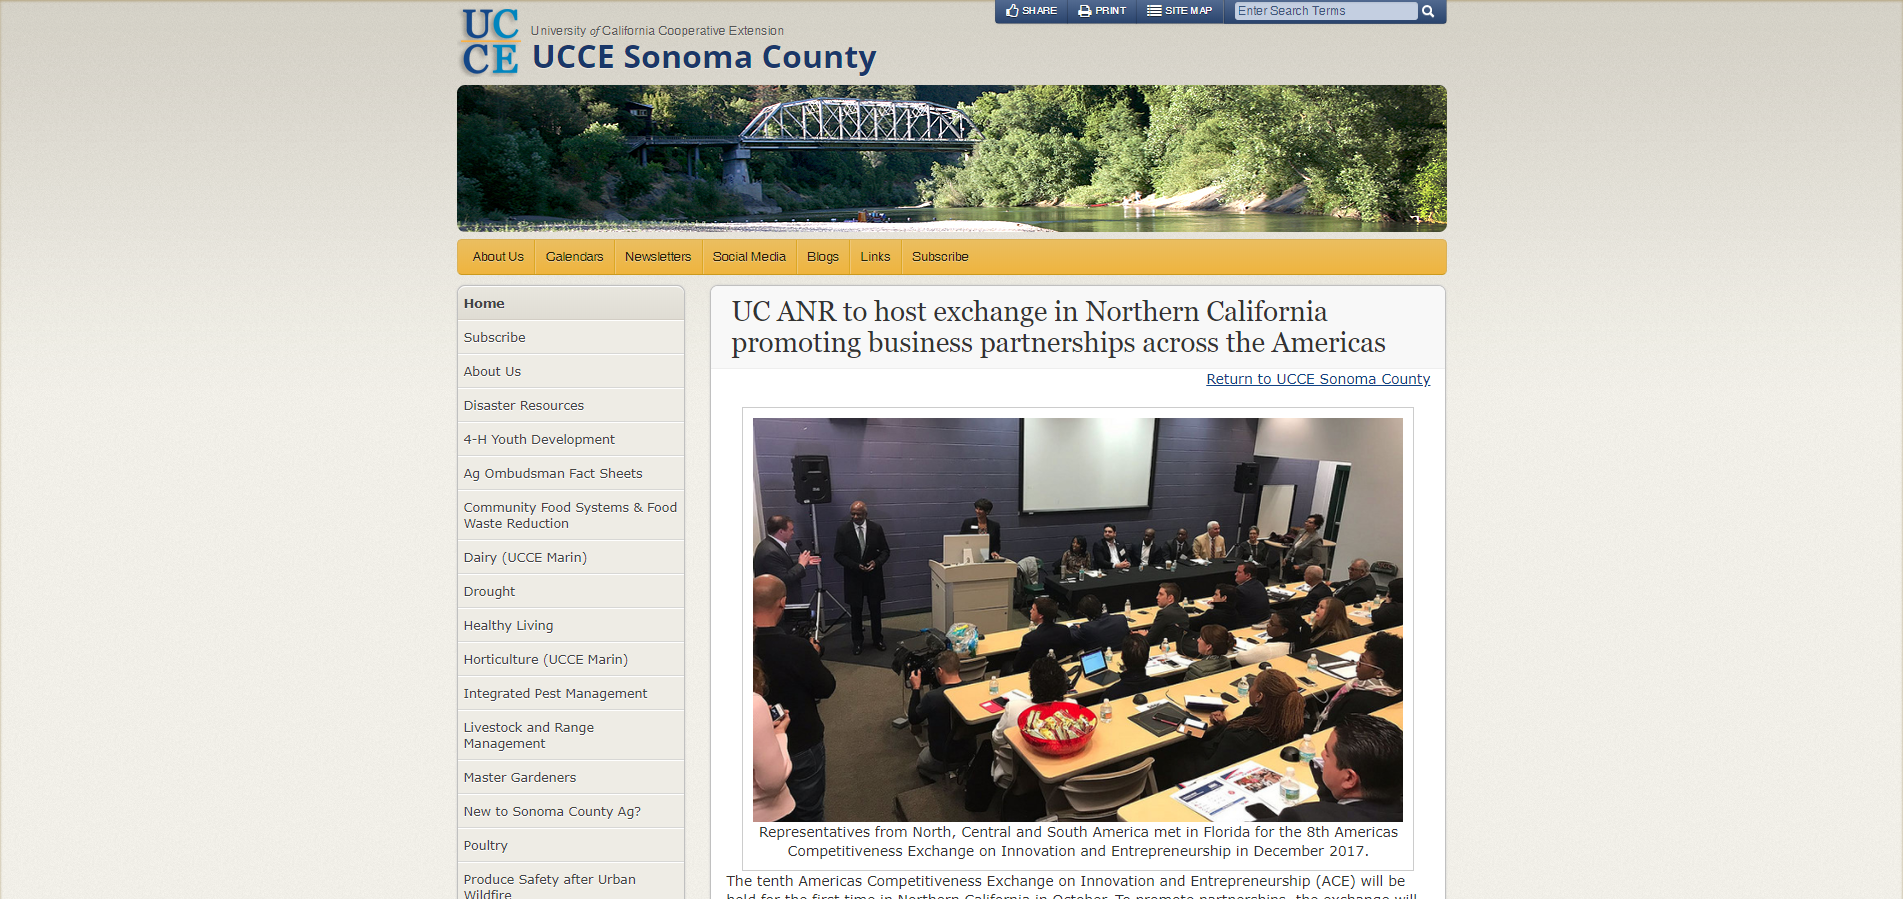 UC ANR to host exchange in Northern California promoting business partnerships across the Americas